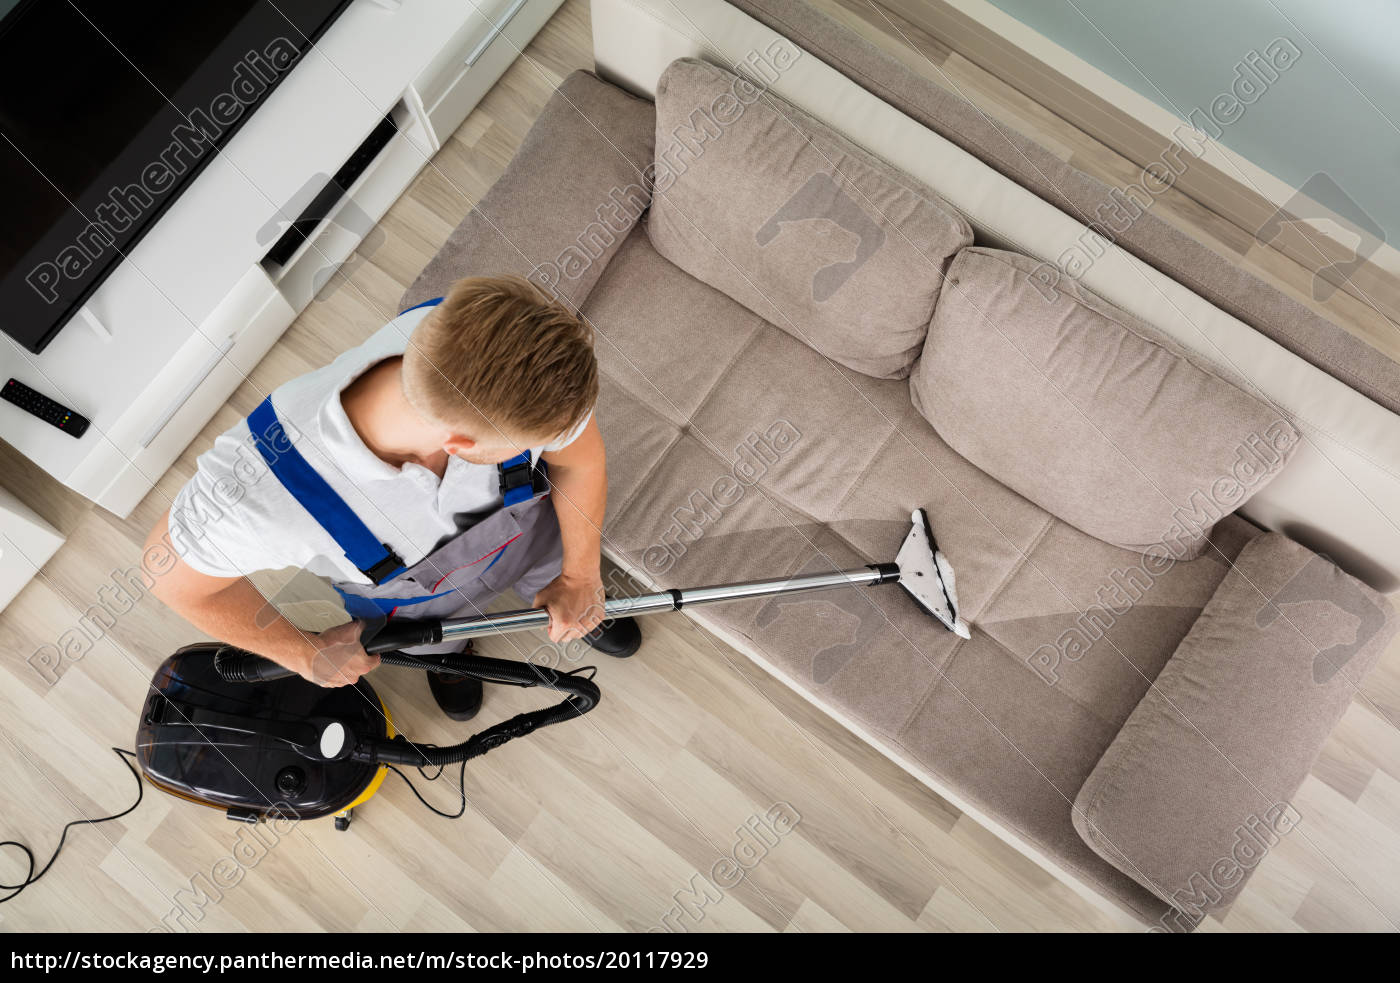 young, man, cleaner, sofa, with, vacuum - 20117929